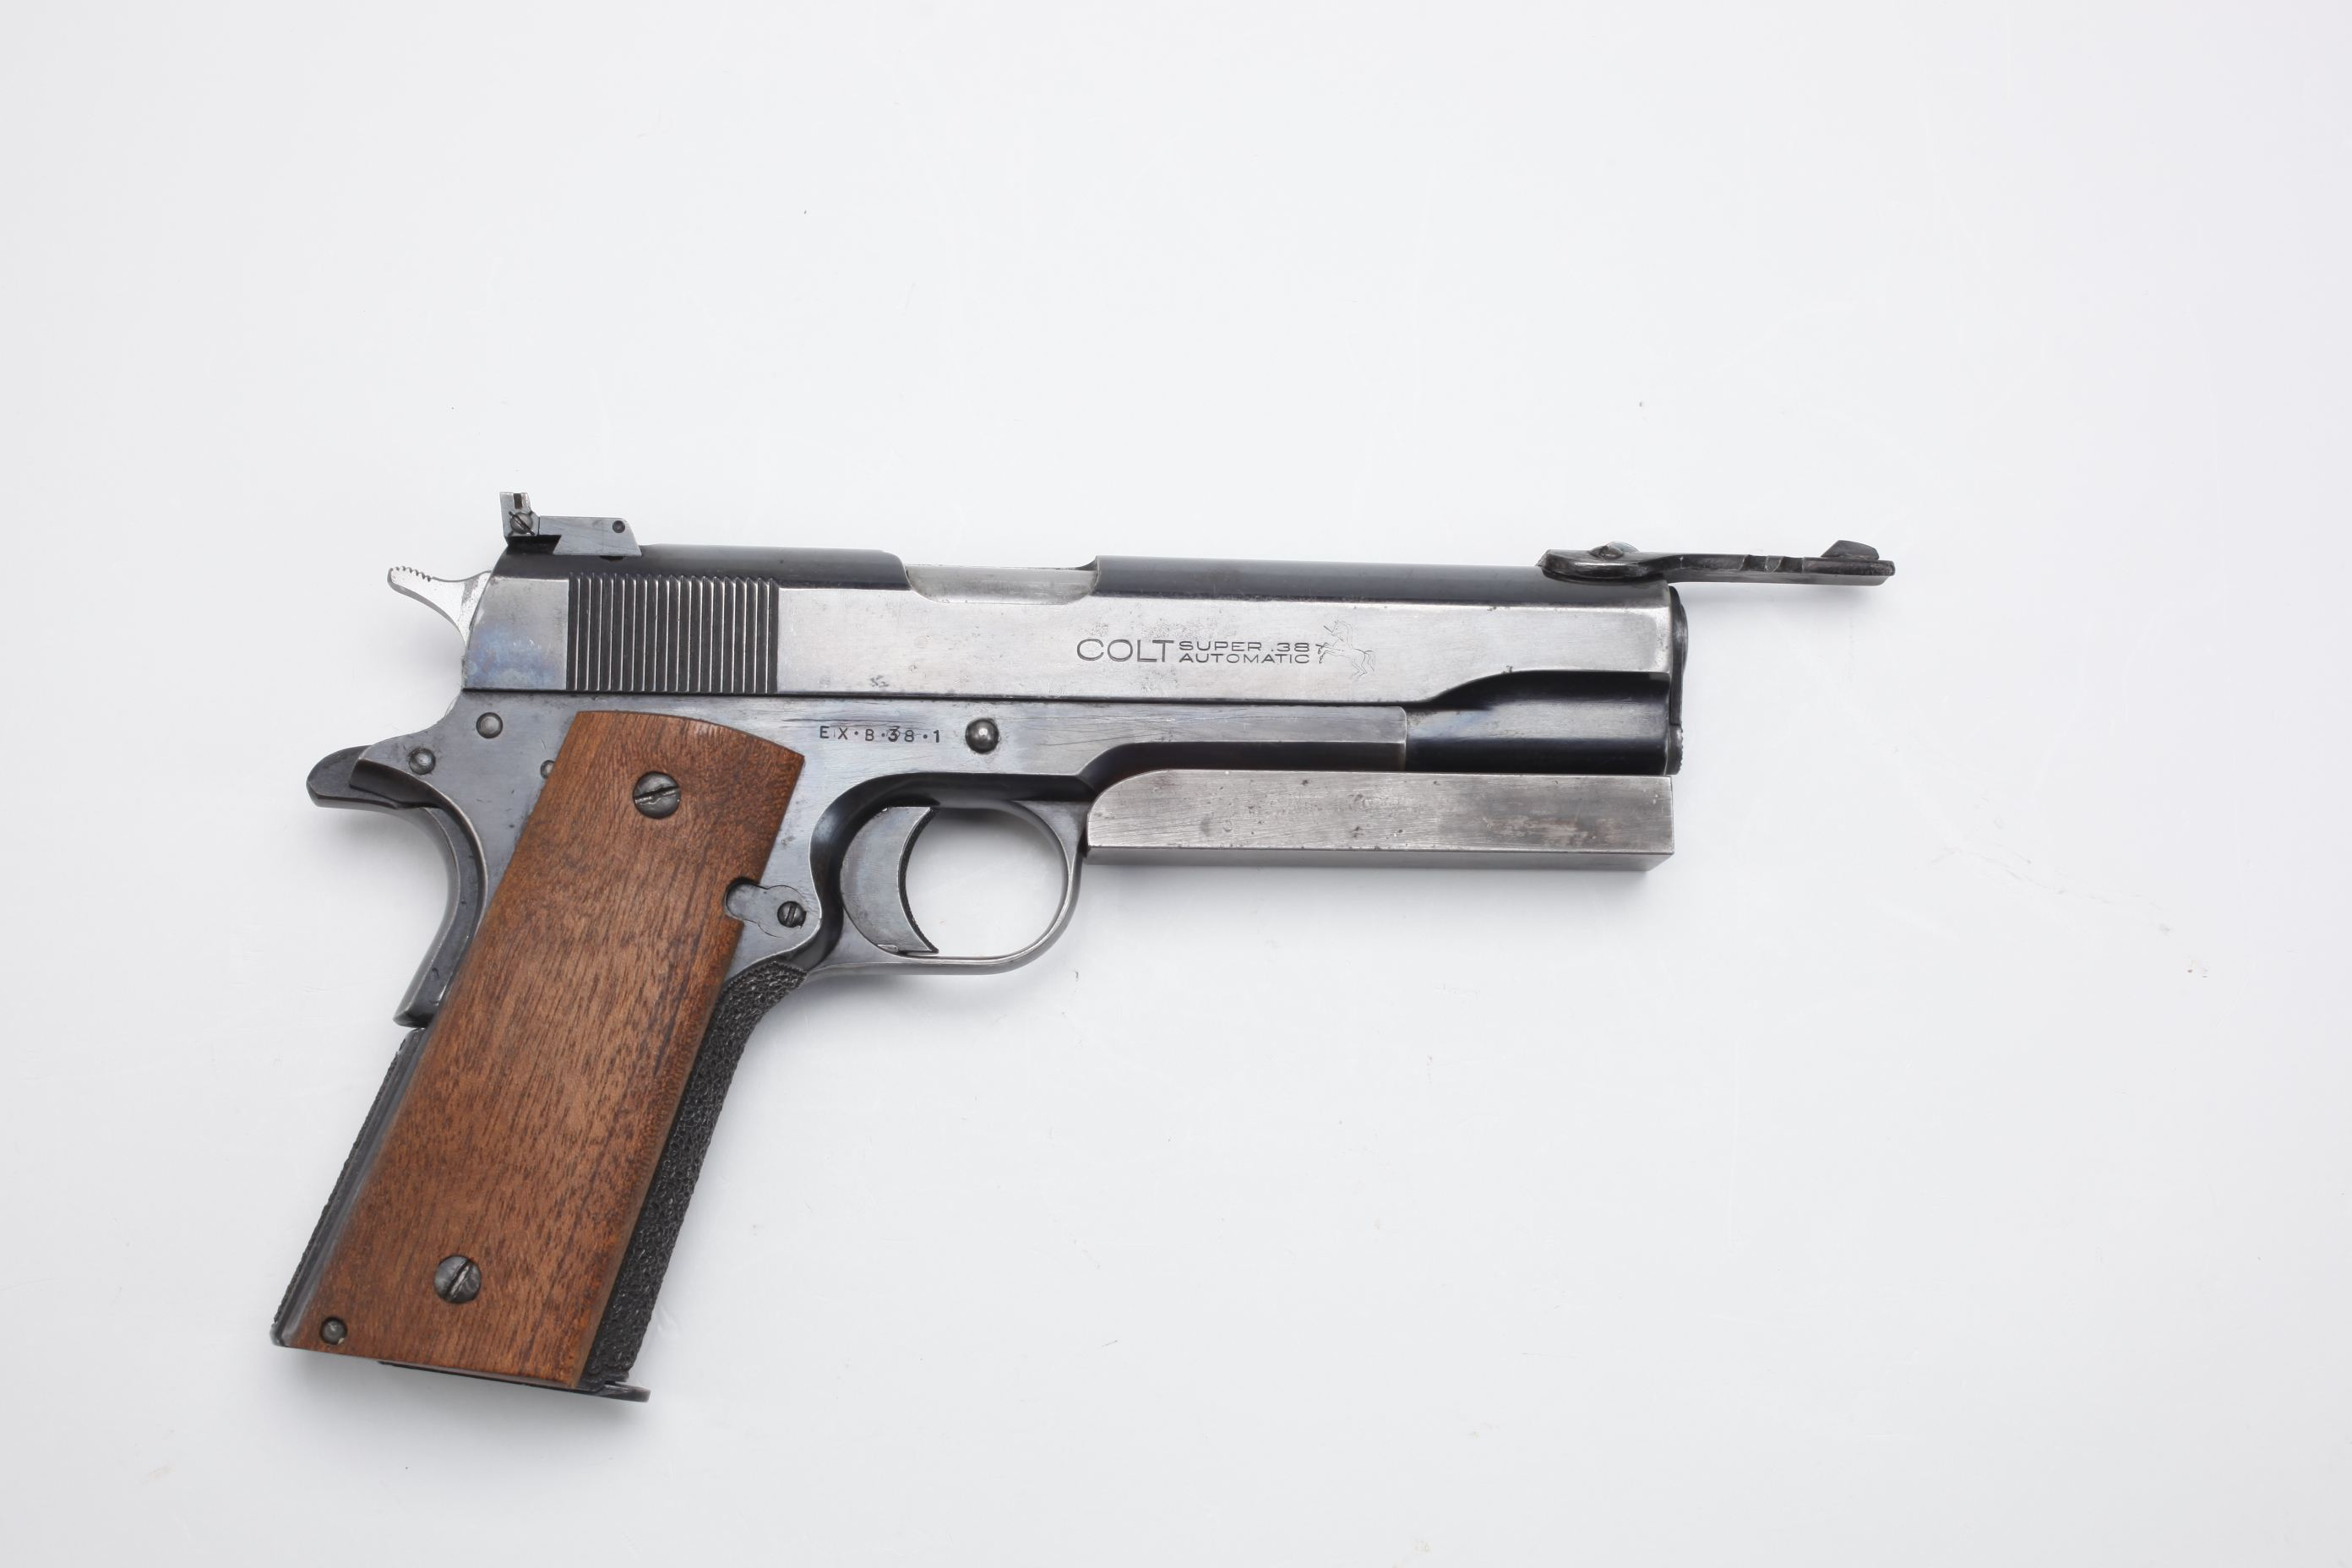 Colt Model 1911 Semi Automatic Pistol